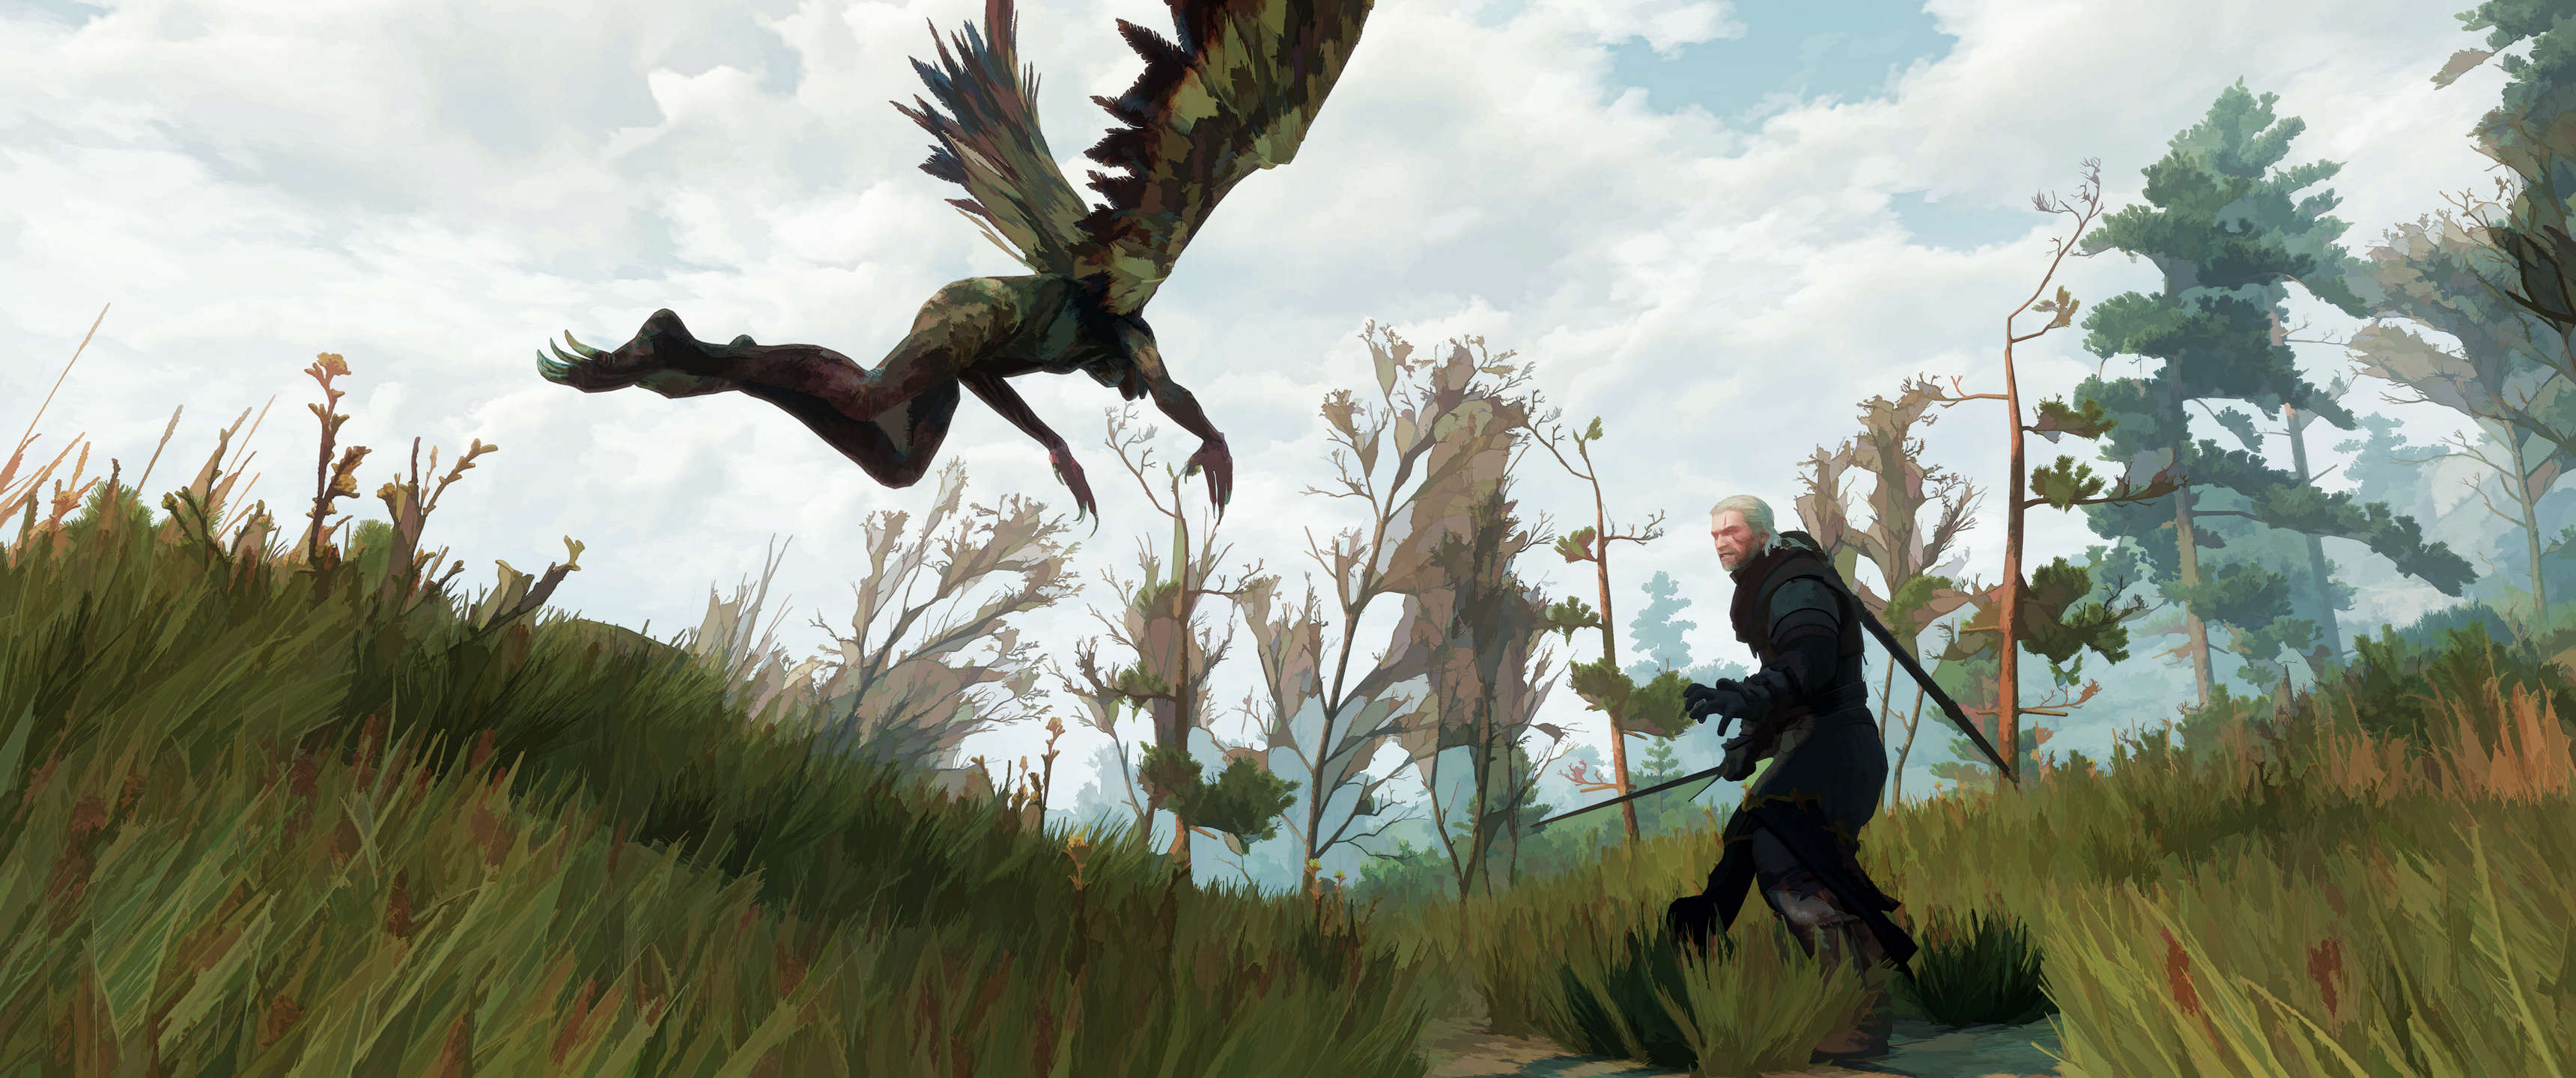 This Guy Turned His Witcher 3 Screenshots Into Works Of Art rdotpWD